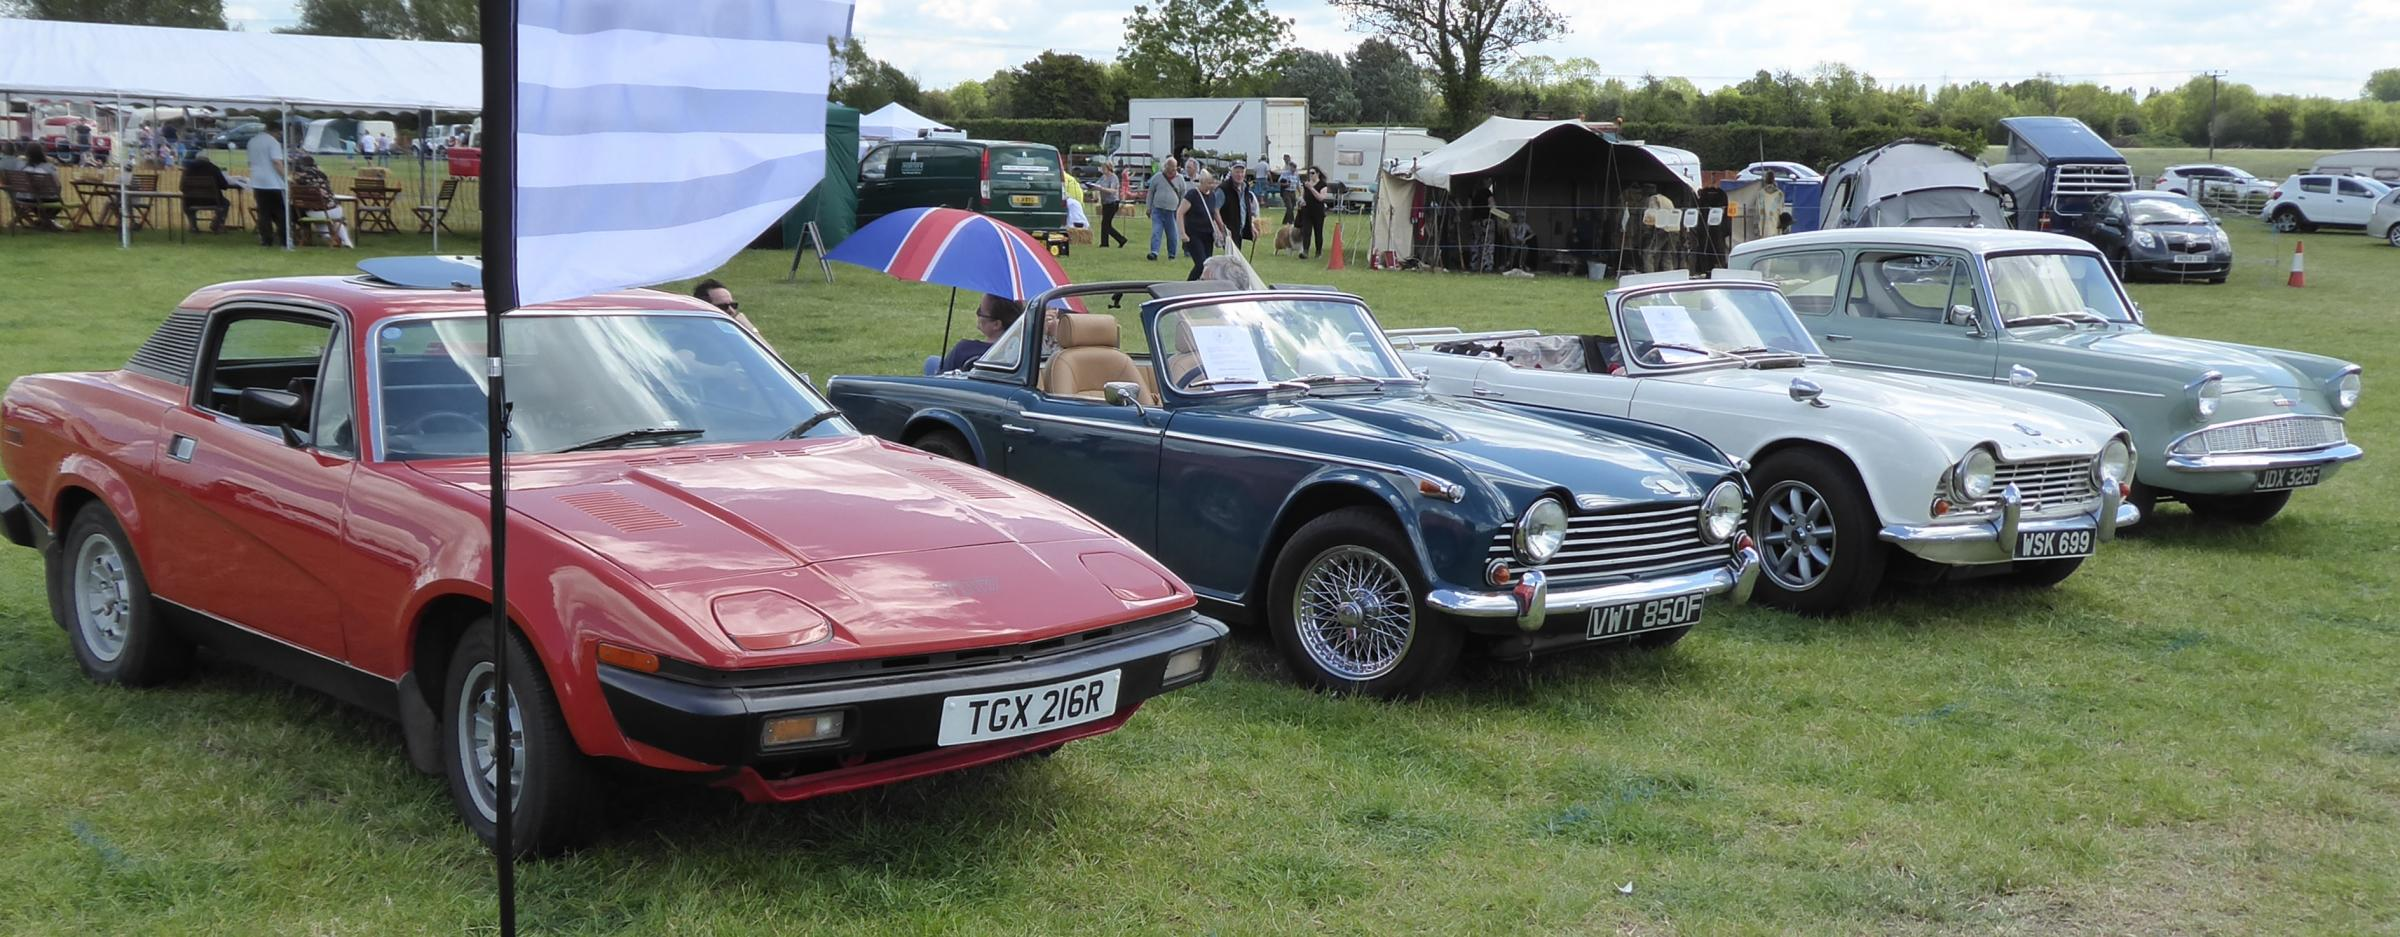 6th Lechlade Annual Vintage Rally & Country Show